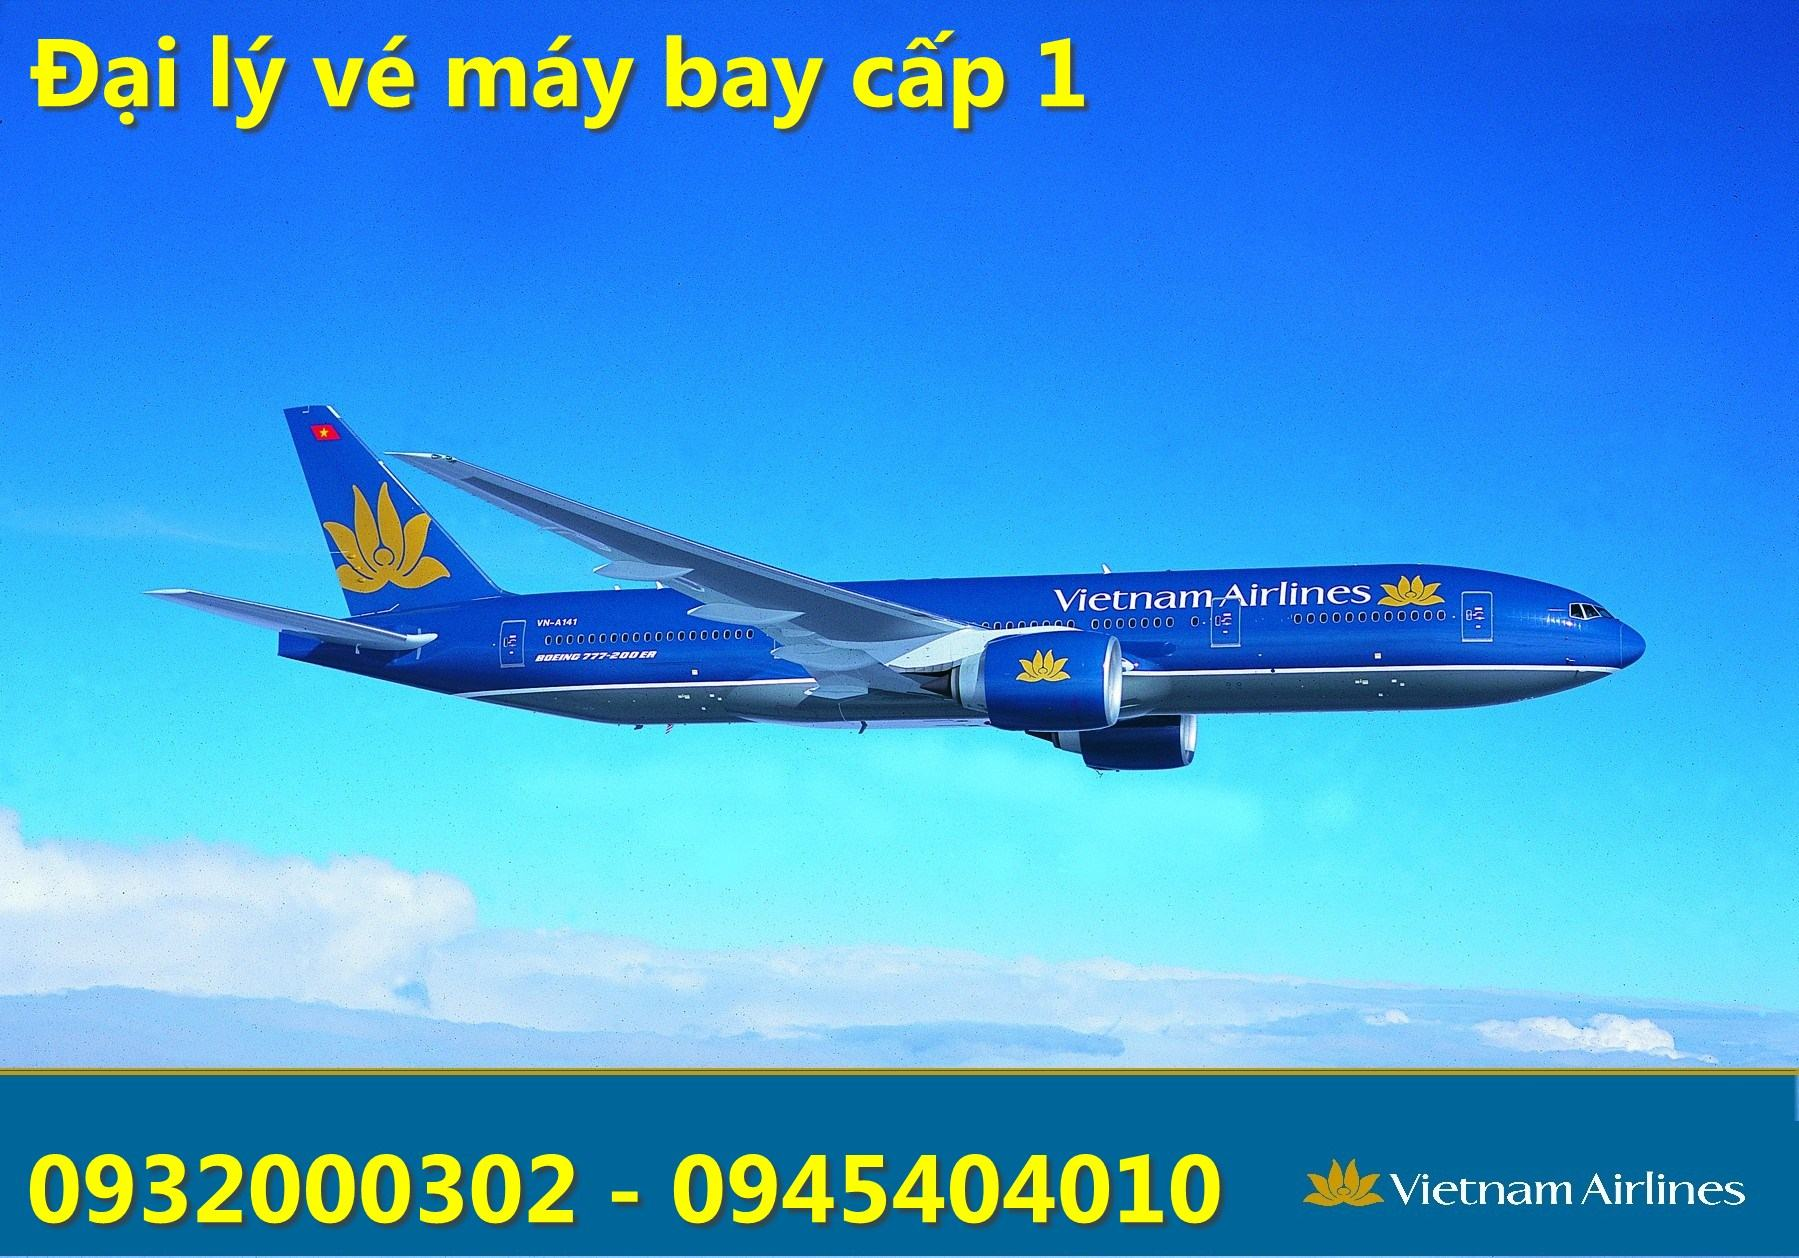 ve may bay cap 1